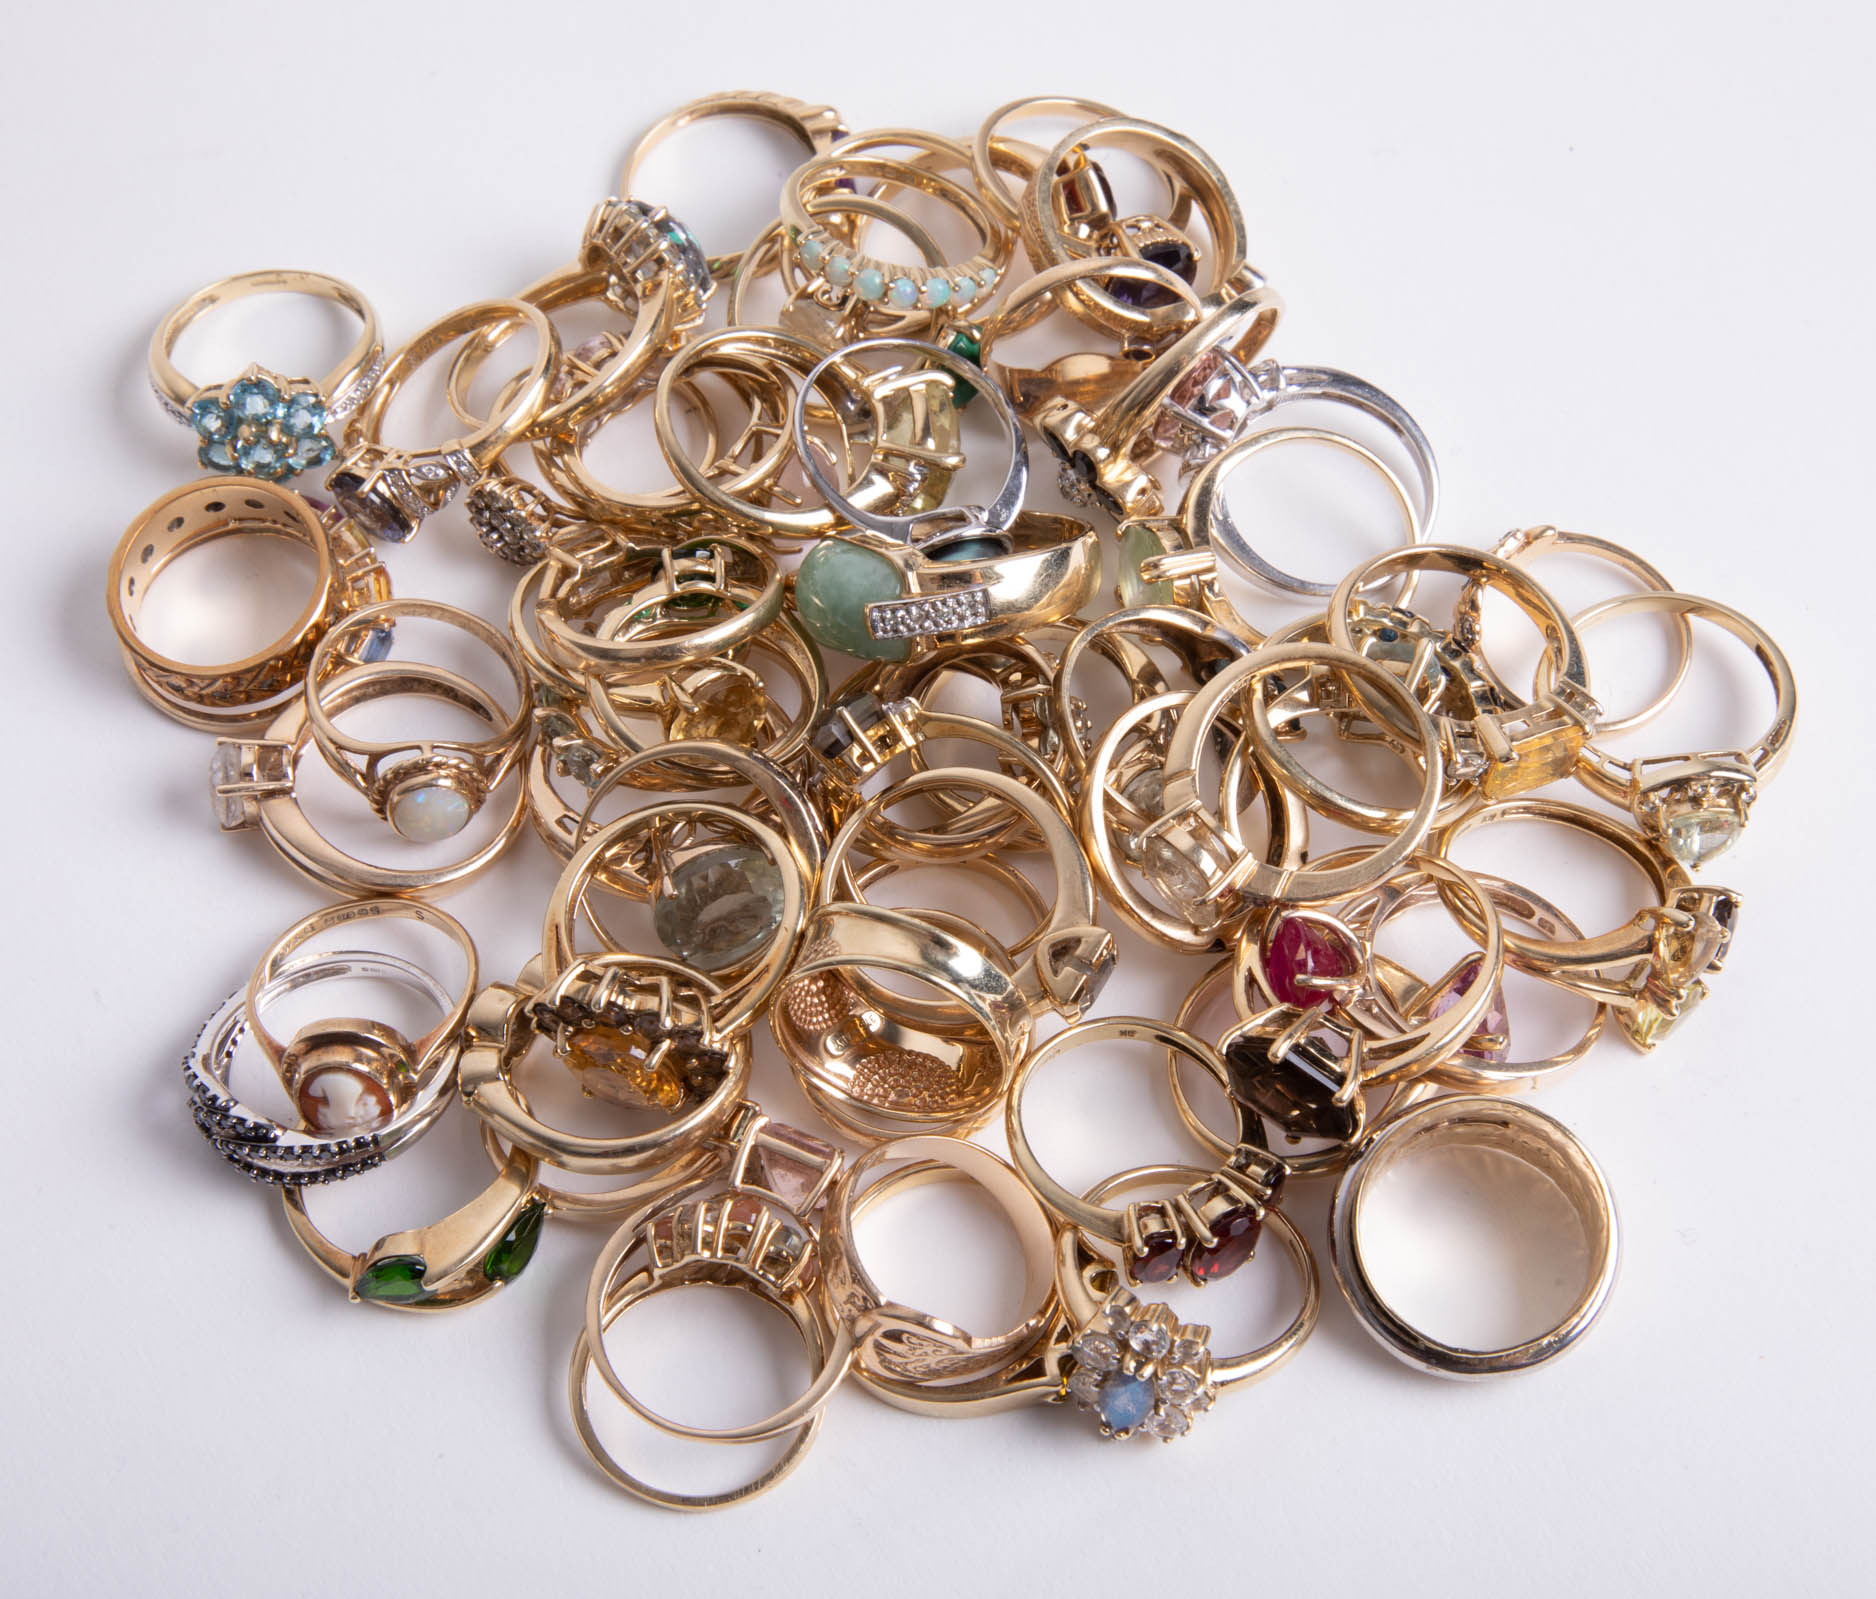 Lot 041 - A quantity of various 9ct gold dress rings, approx 172.9g.